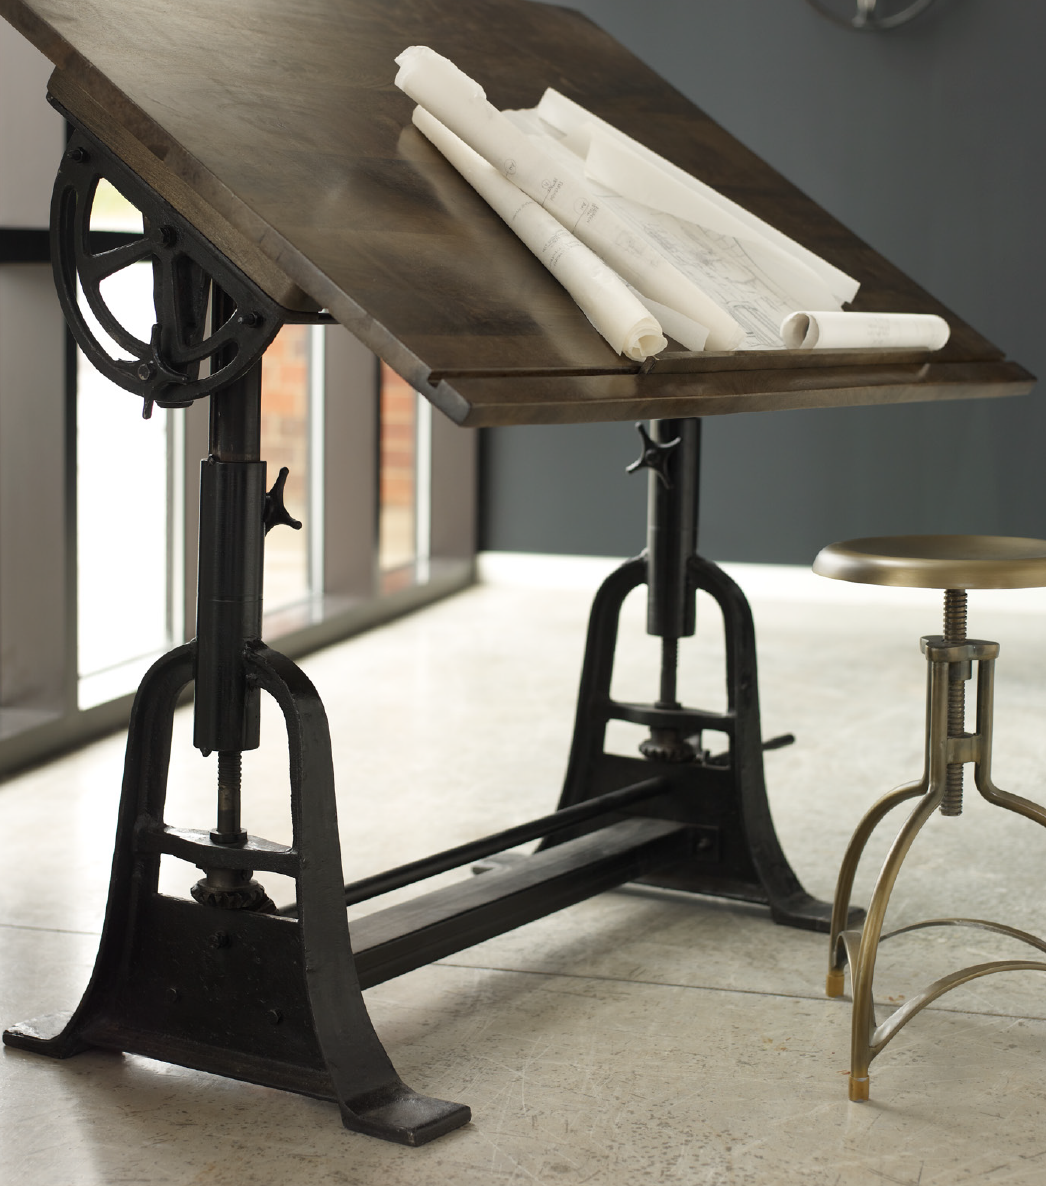 French Architect Drafting Table - French Architect Drafting Table Industrial, Architects And